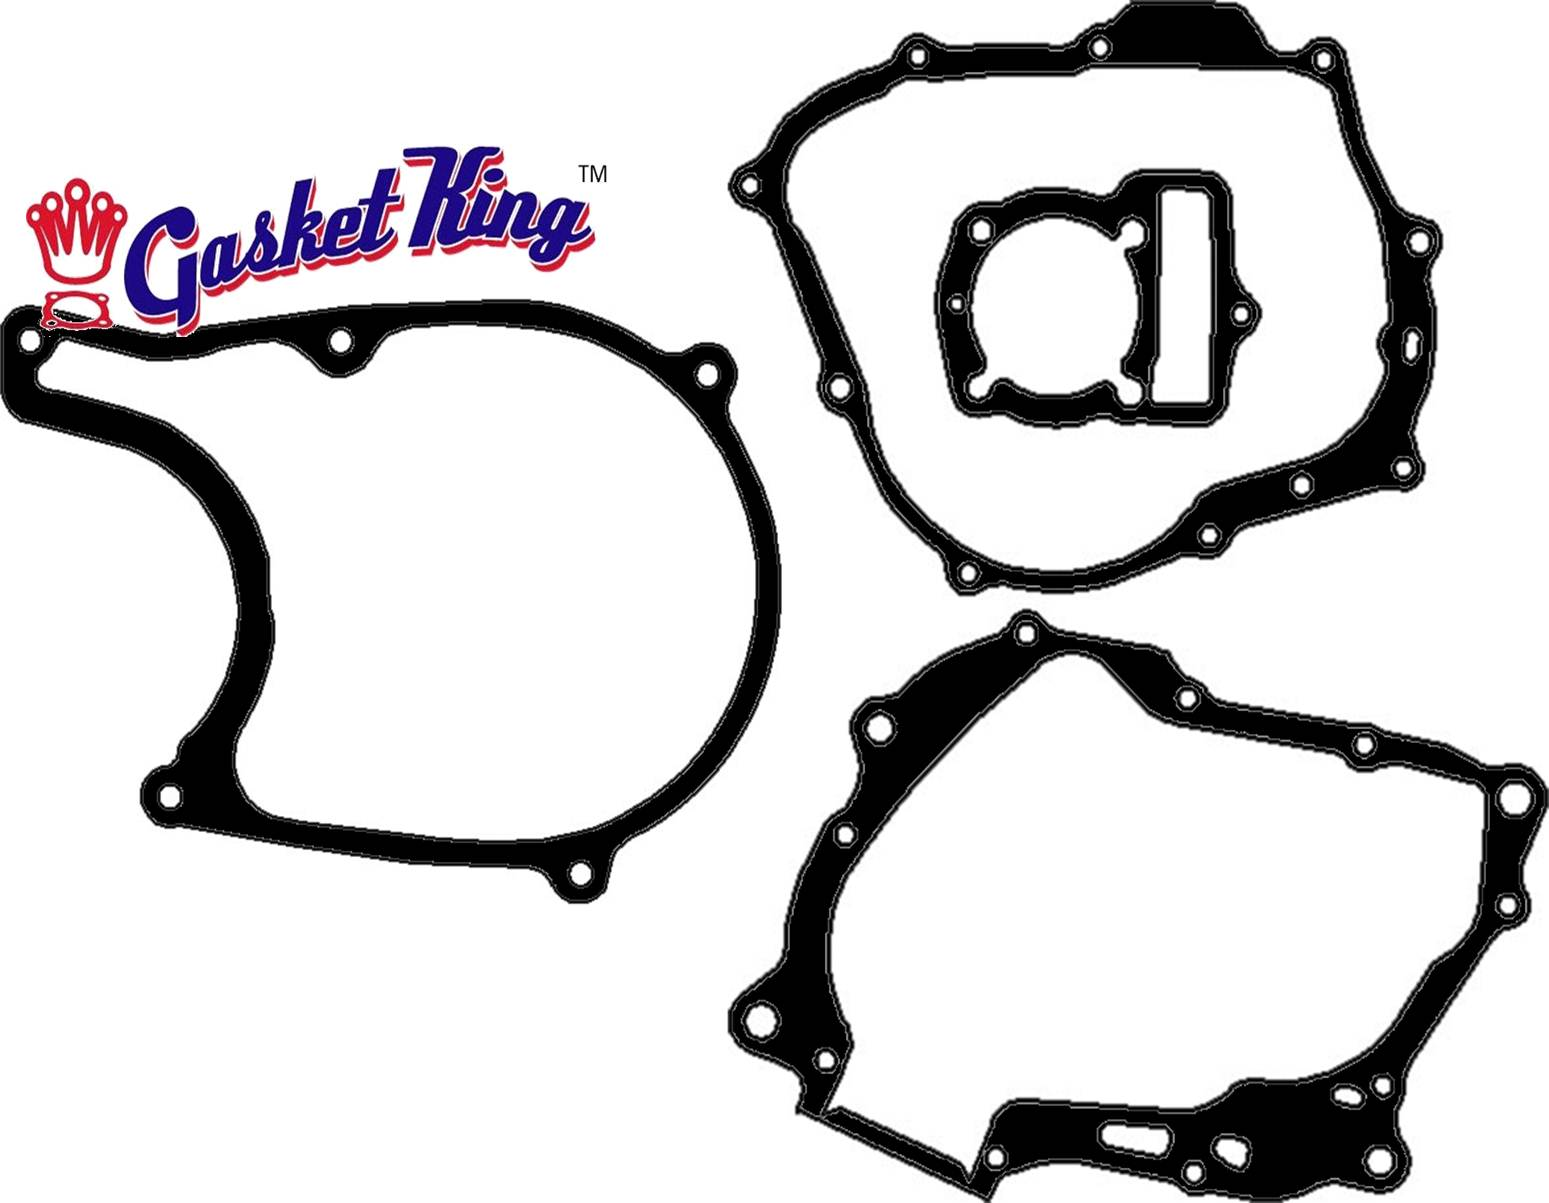 Honda Xl100s Gaskets 1979 82 on Honda Motorcycle Gaskets